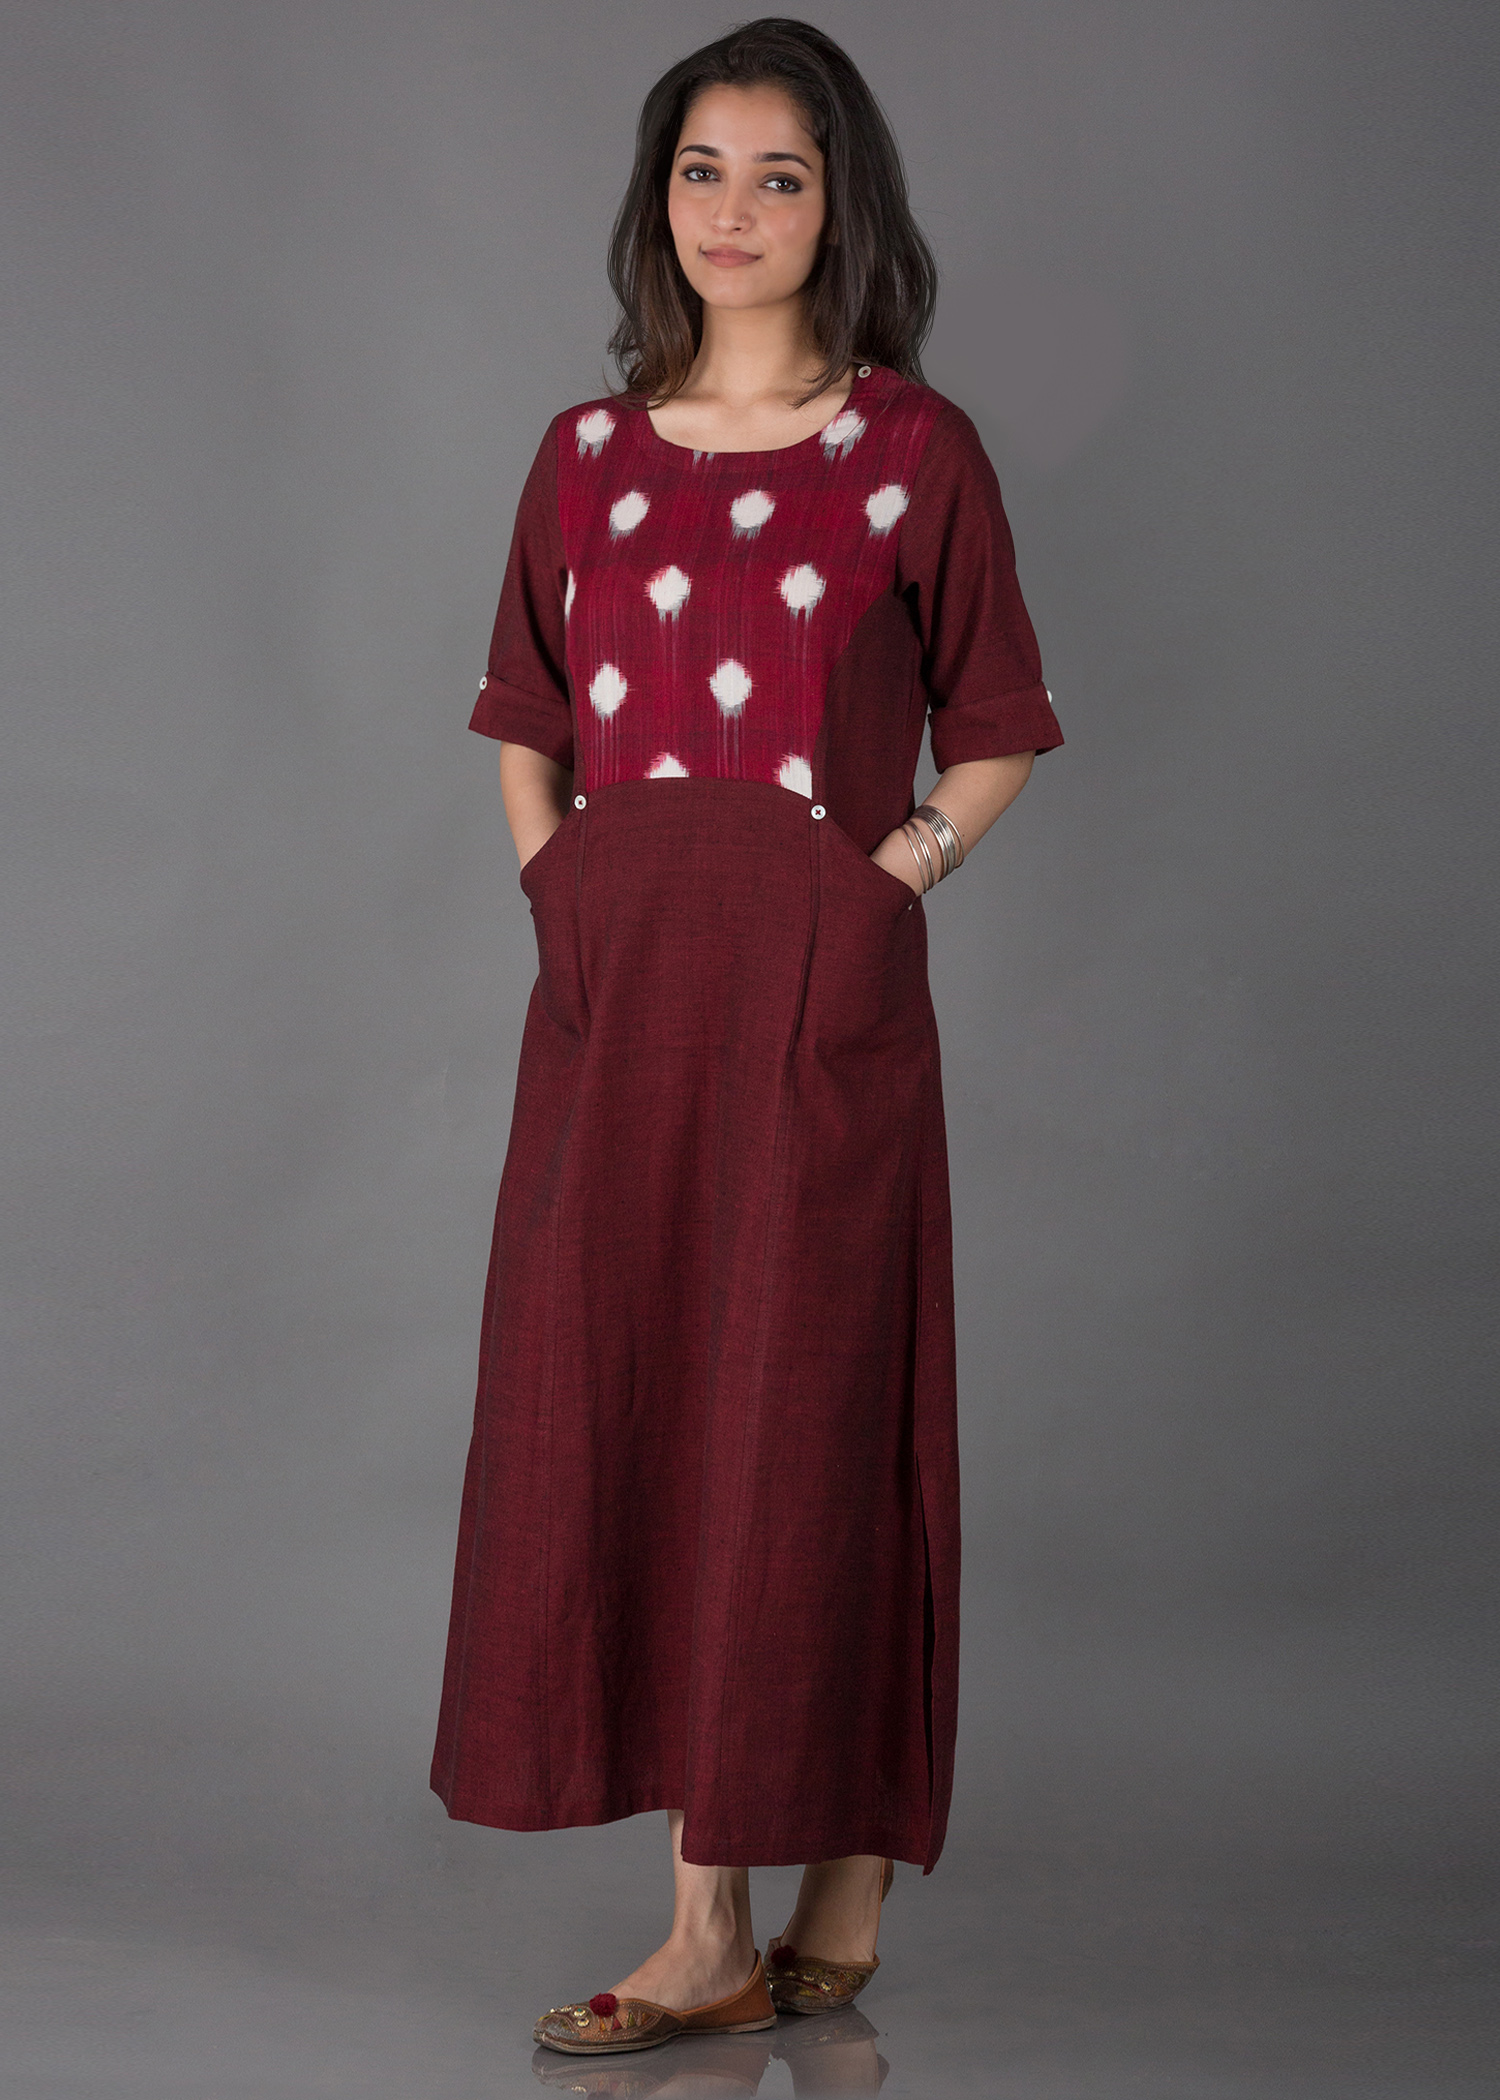 Maroon & White Handwoven Cotton & Ikat Dress